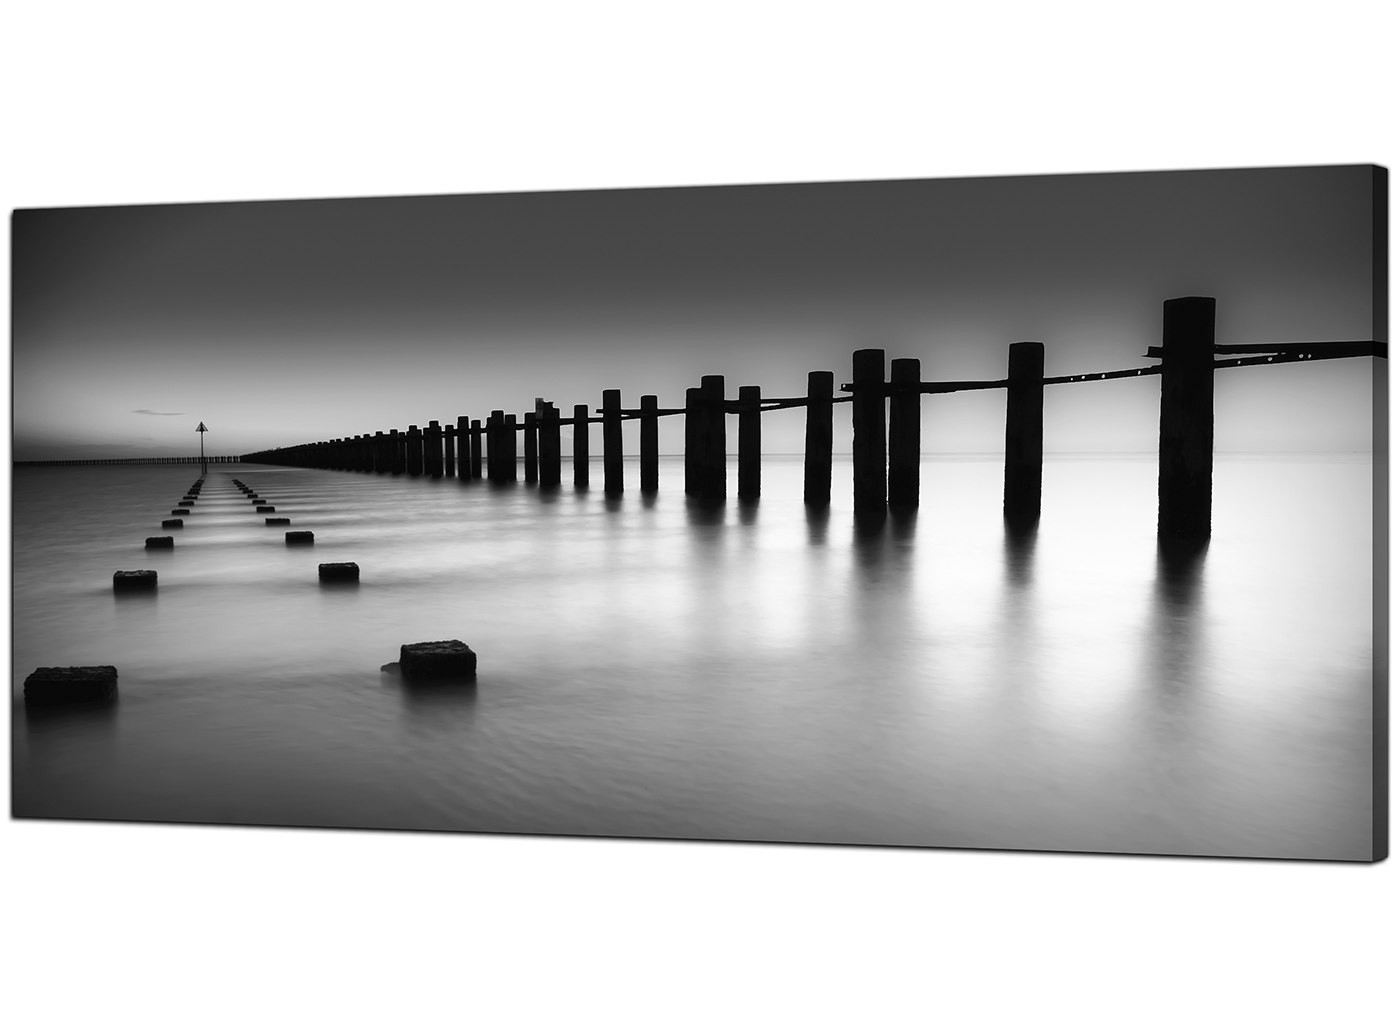 Modern Black And White Canvas Art Of The Sea With Regard To Fashionable Black And White Canvas Wall Art (View 8 of 15)